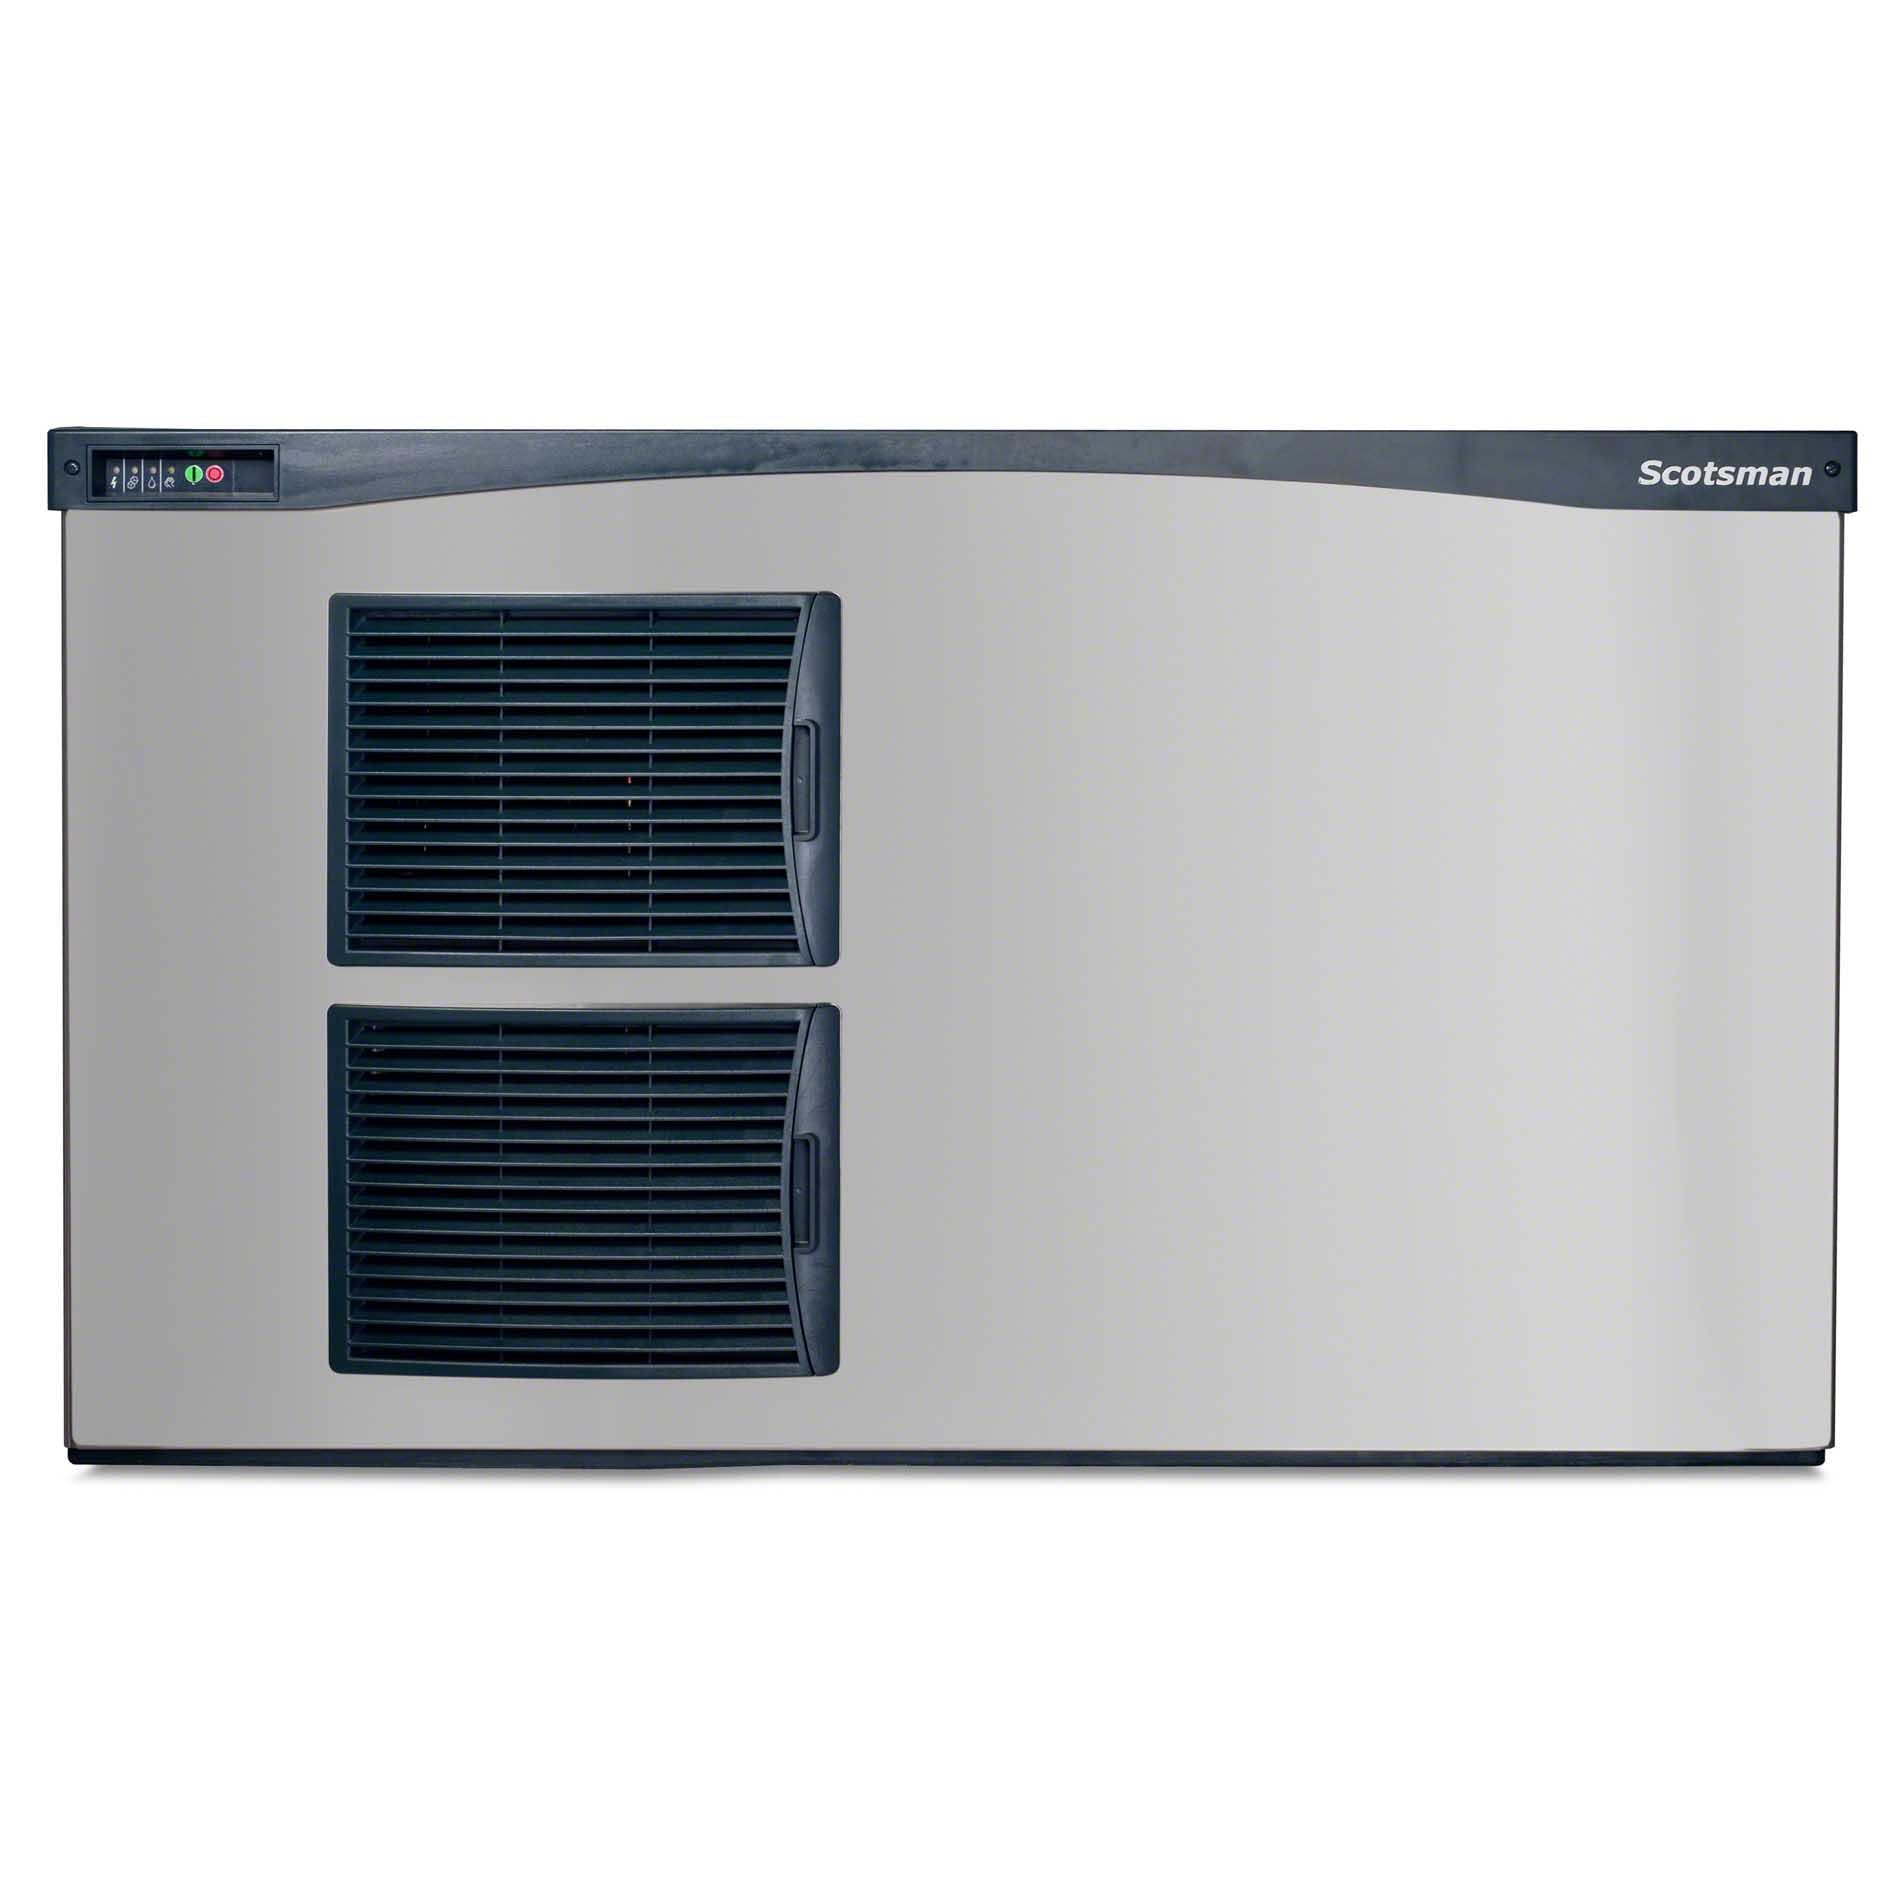 Scotsman - C1448SA-32A 1553 lb Half Size Cube Ice Machine - Prodigy Series - sold by Food Service Warehouse